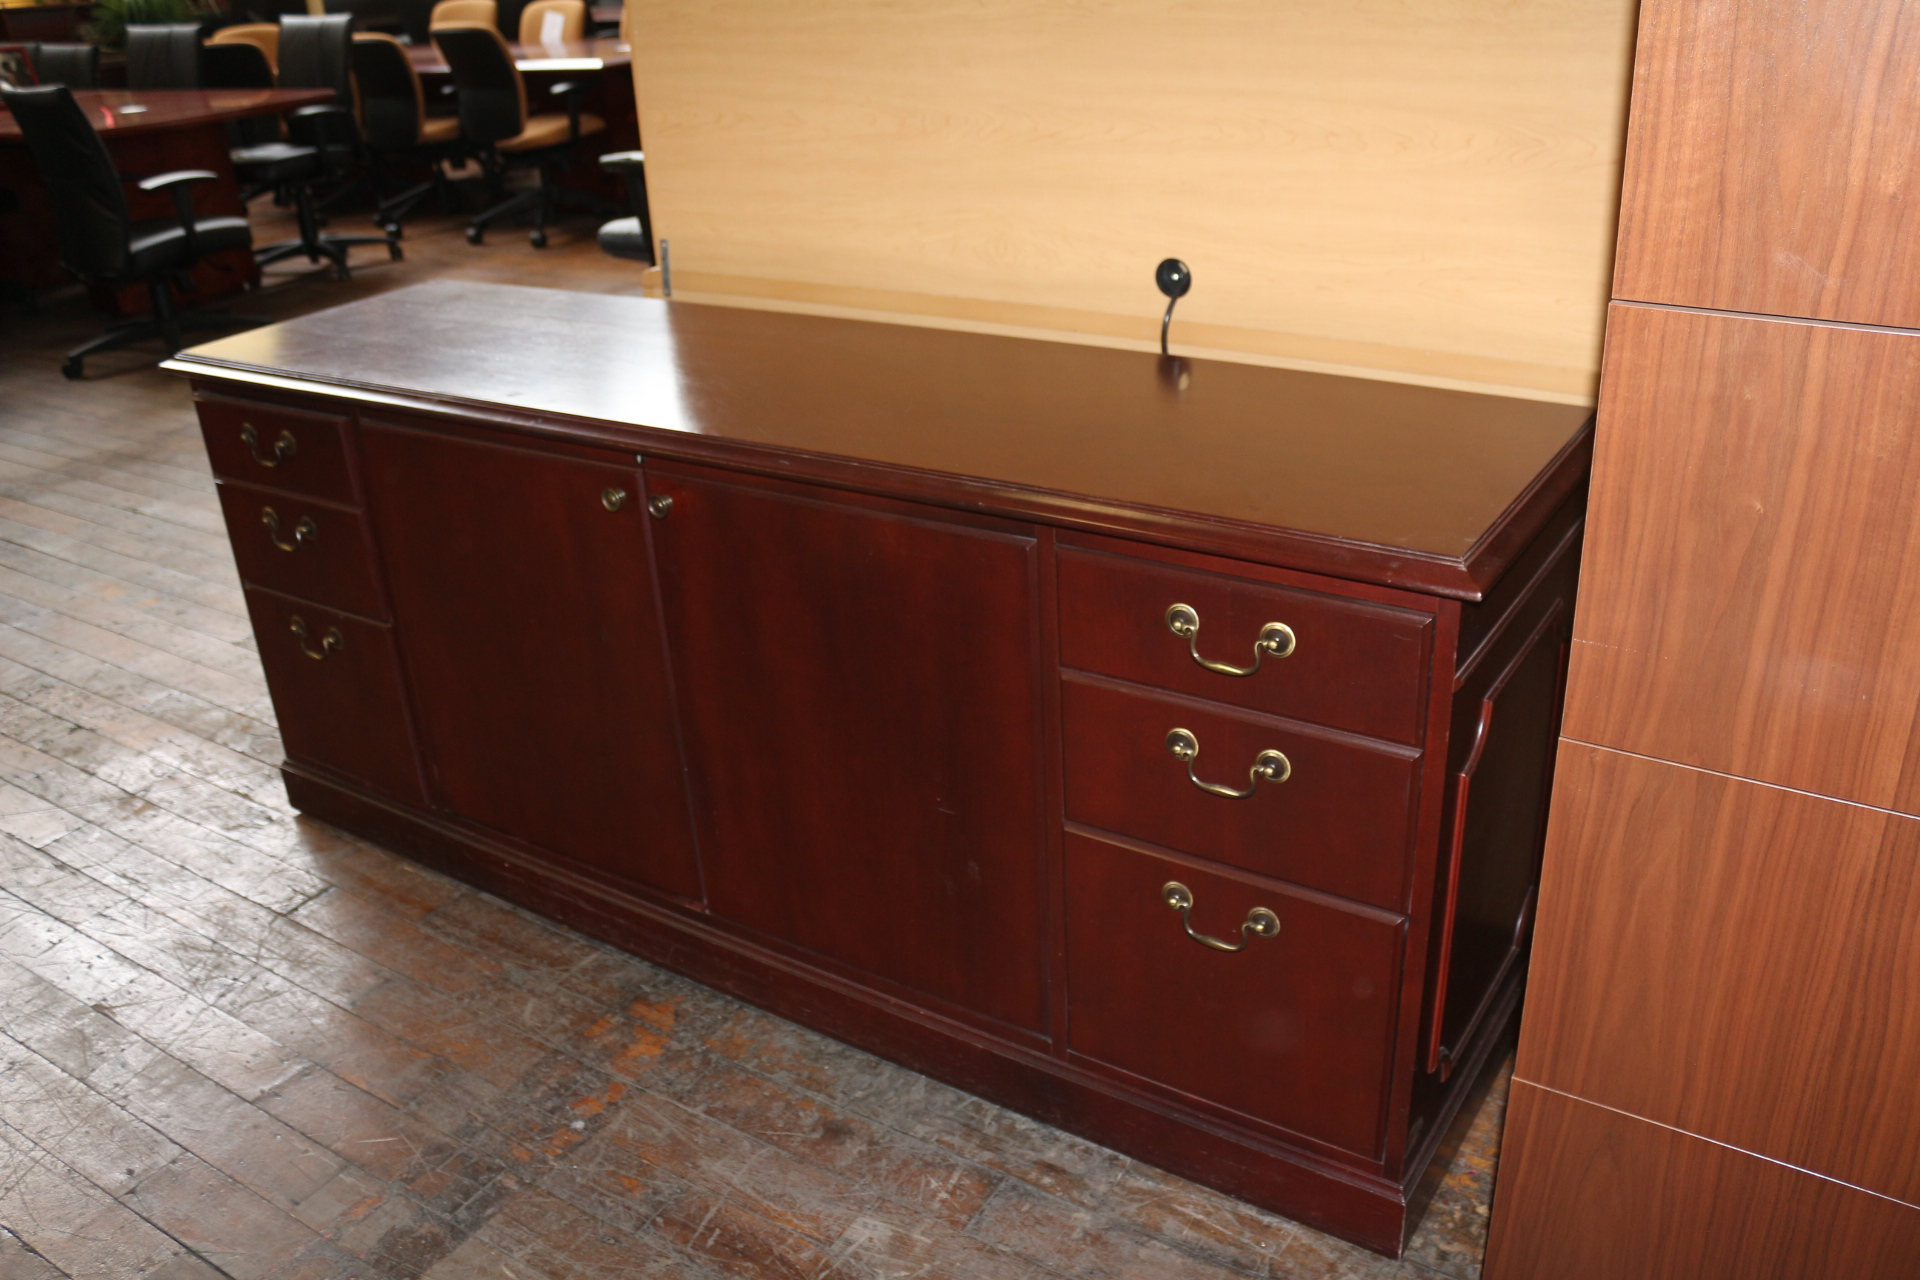 peartreeofficefurniture_peartreeofficefurniture_img_0852.jpg